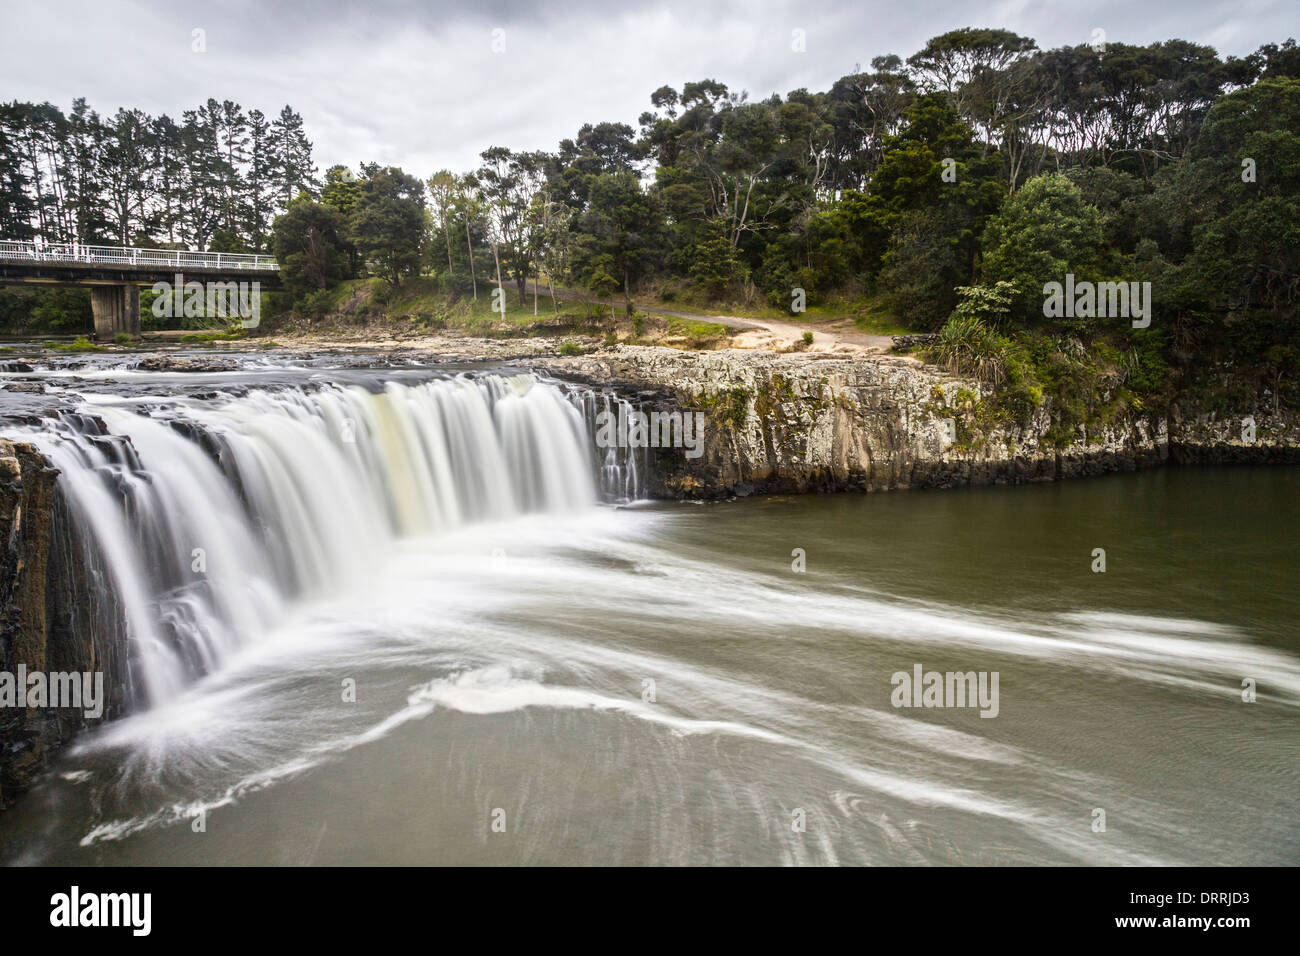 Haruru Falls on the Waitangi River in the Bay of Islands, Northland, New Zealand. Stock Photo